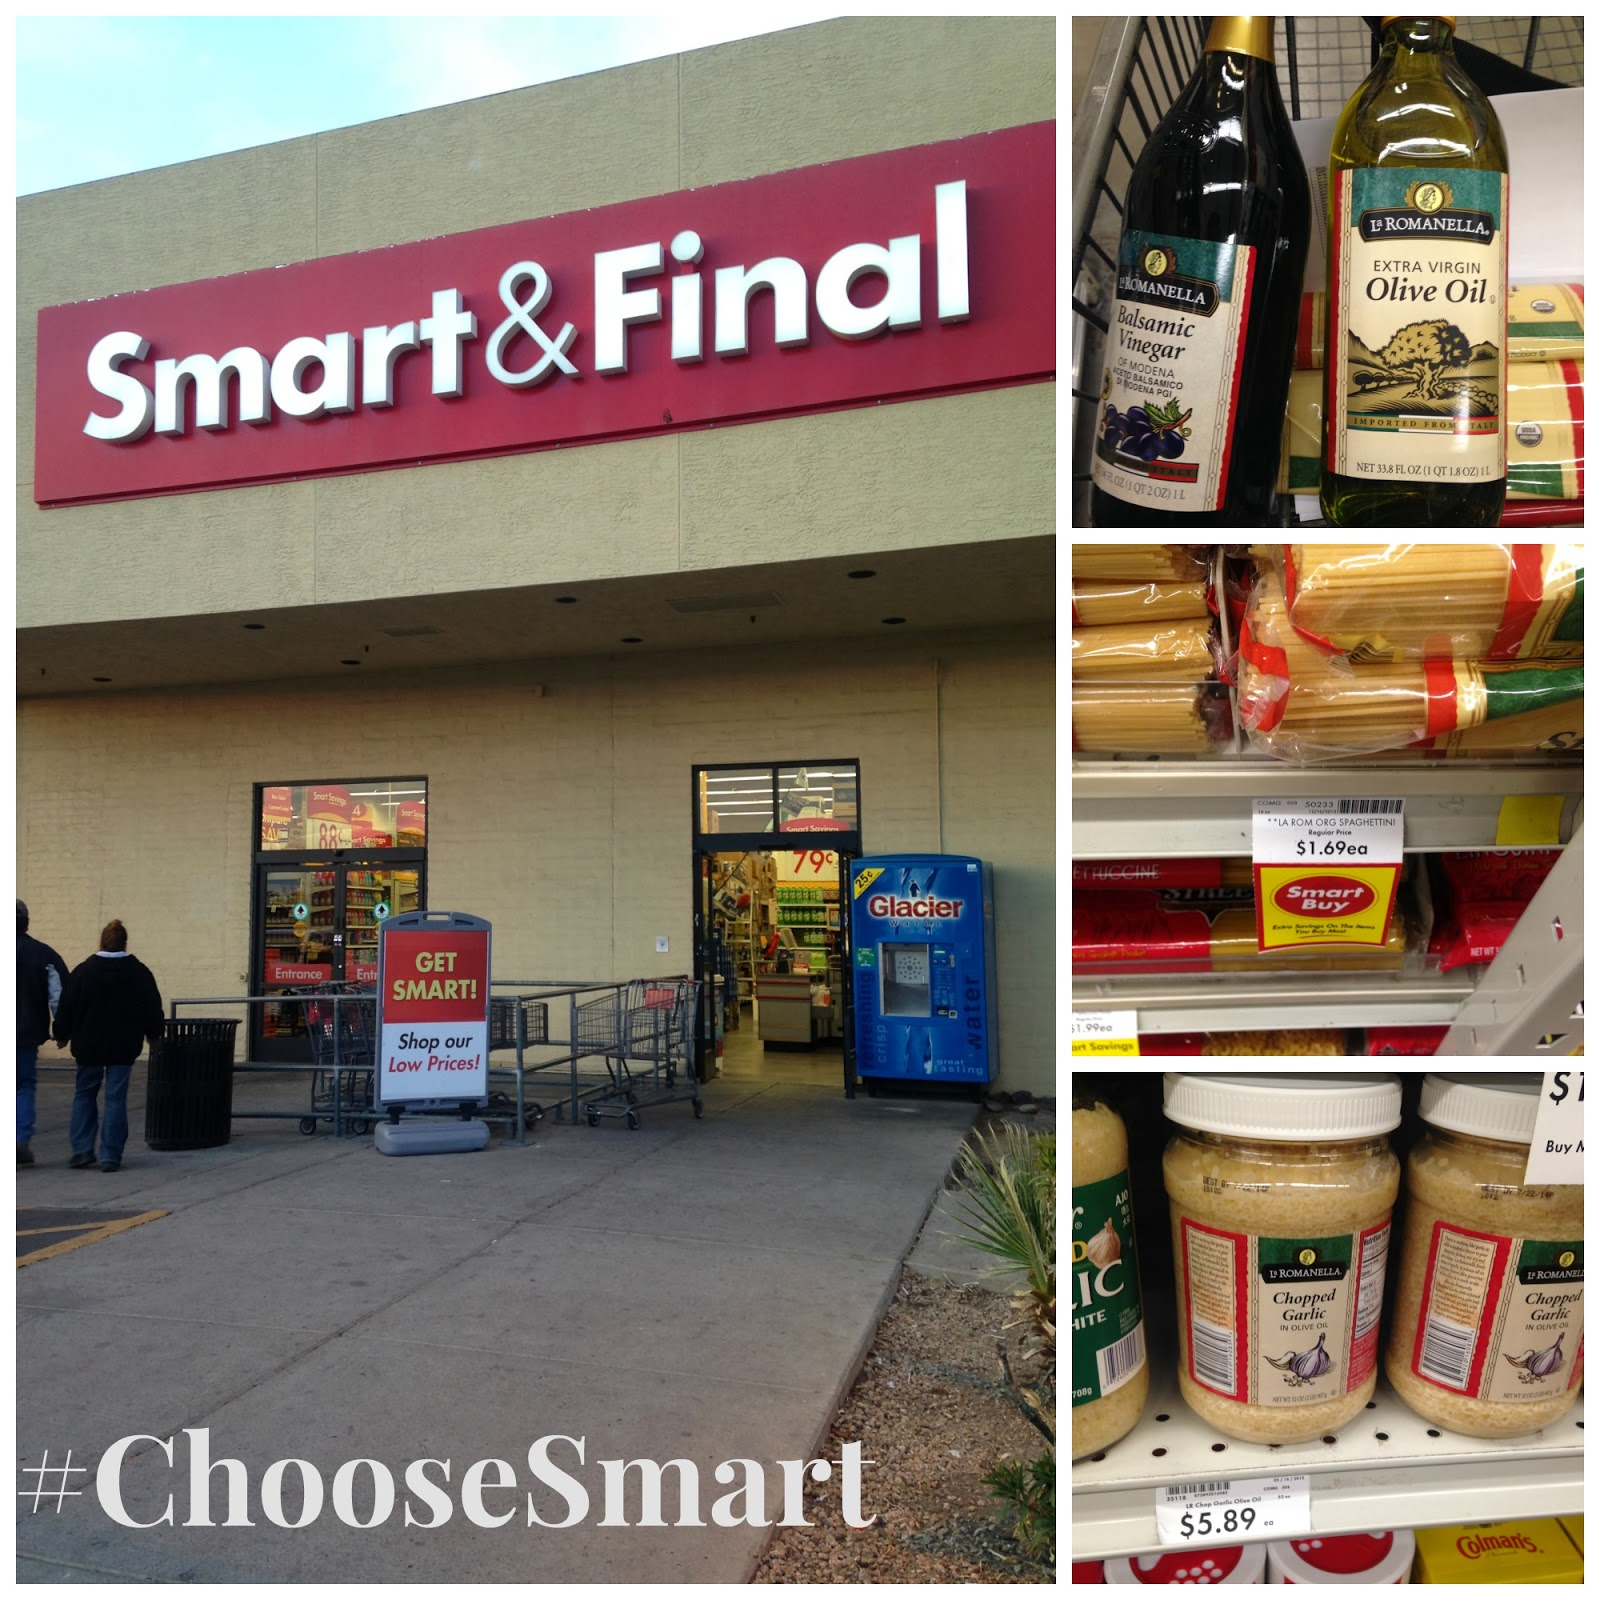 #ChooseSmart, #Cbias, #Shop